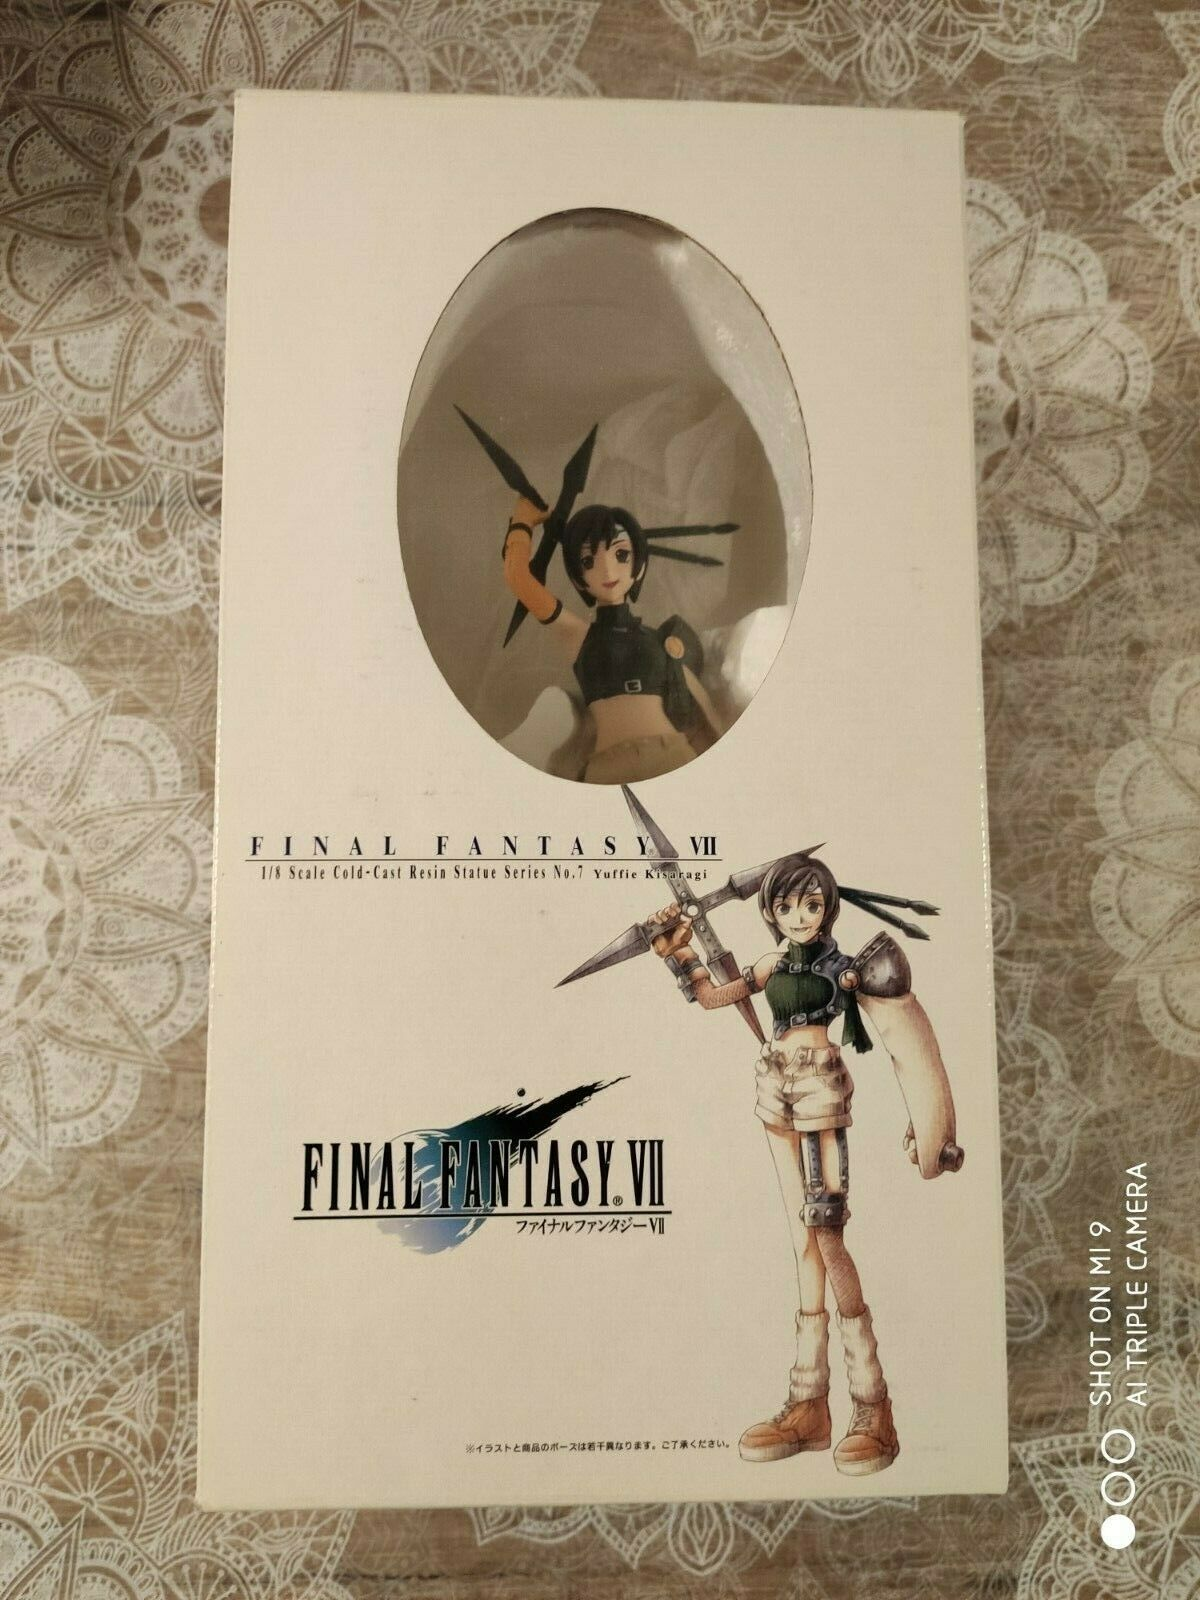 Figurine Figure Final Fantasy FF 7 VII kotobukiya resin Youffie square enix